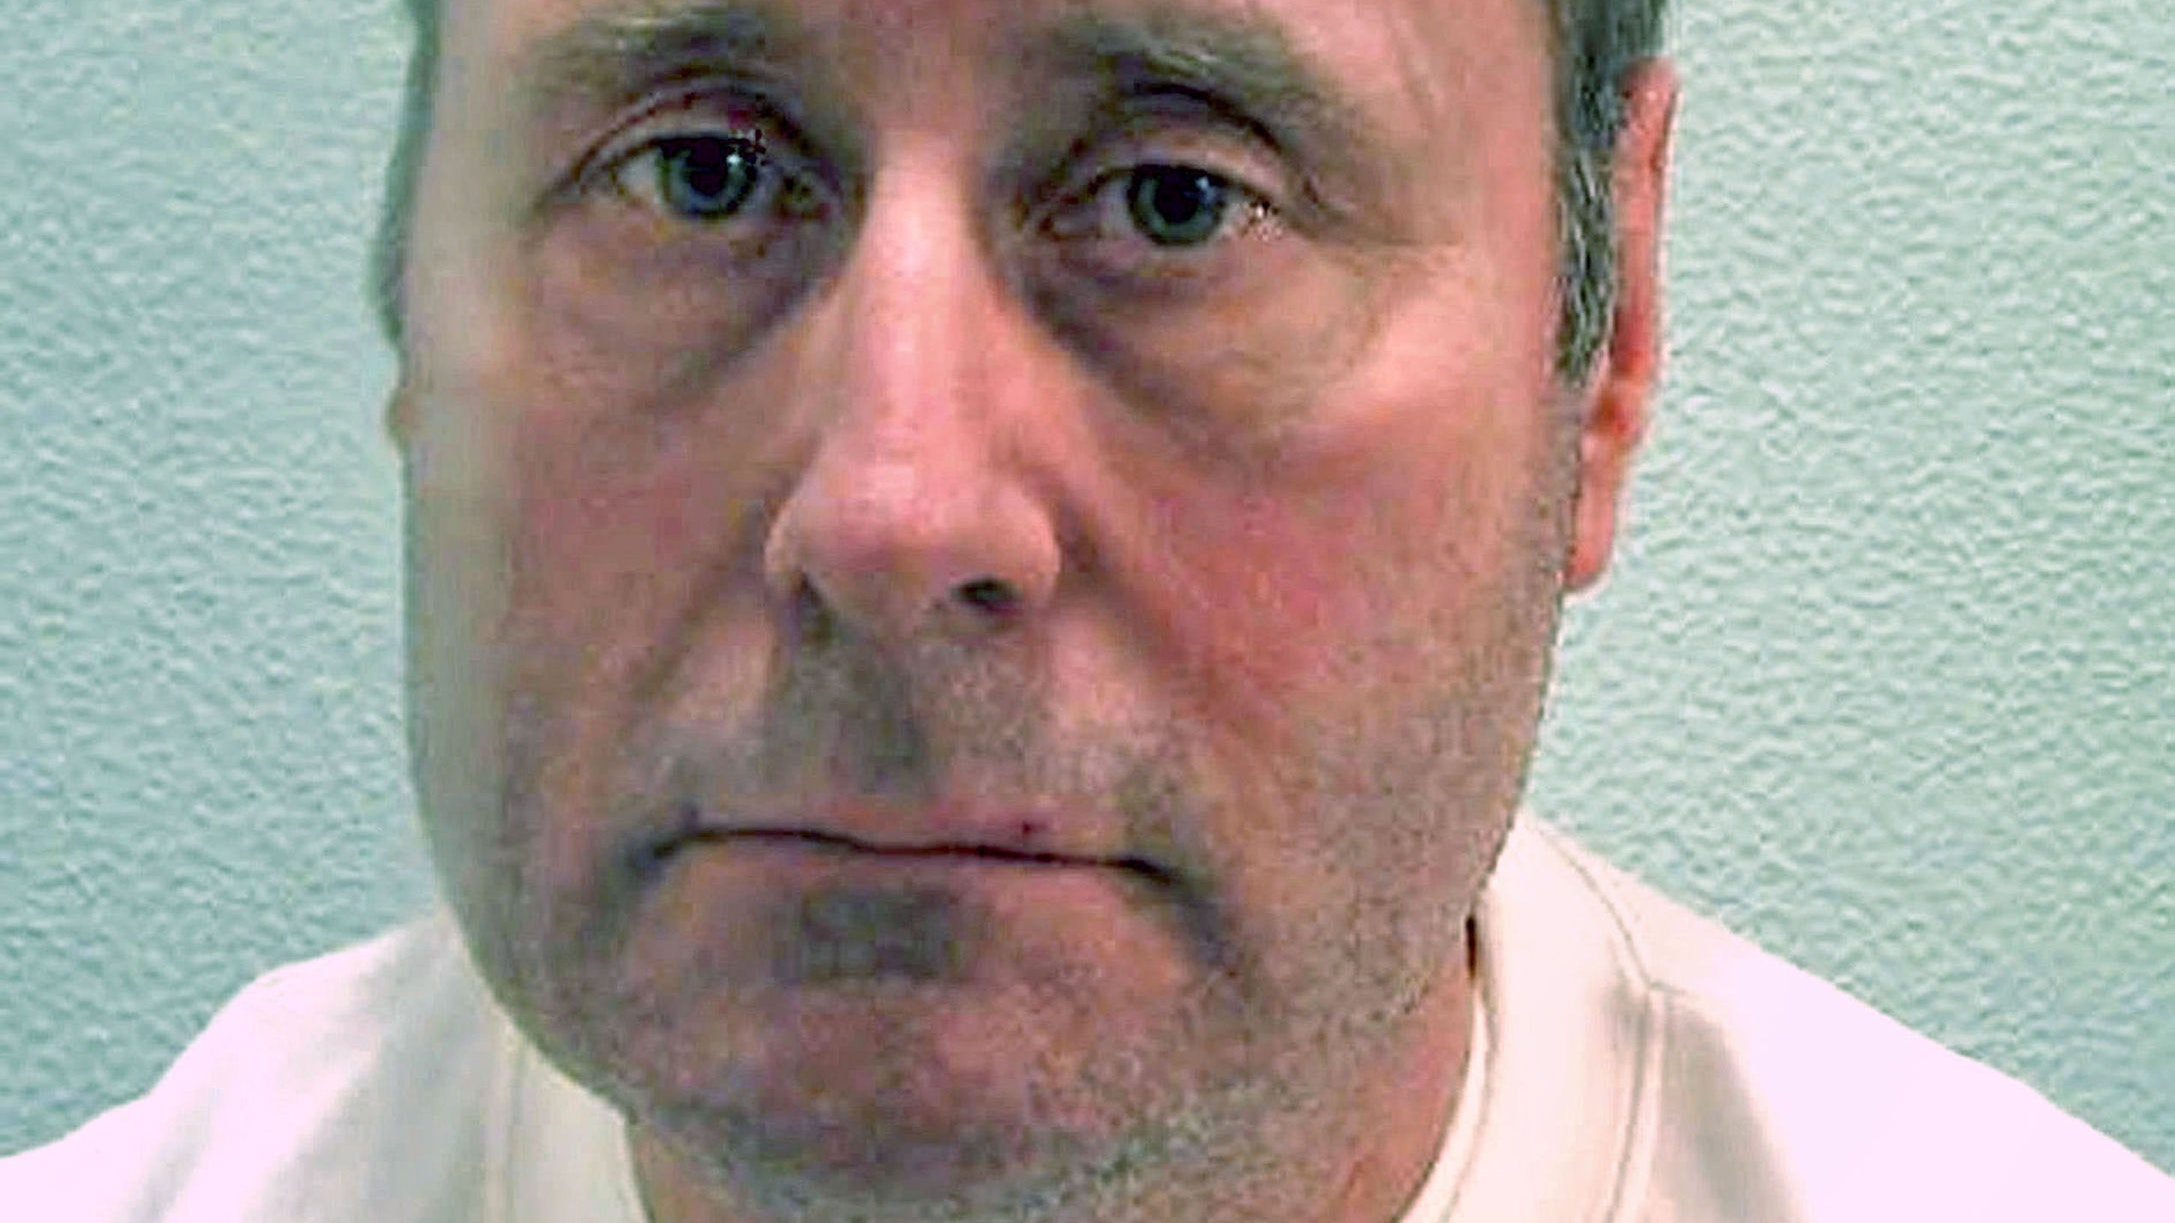 John Worboys: Parole Board Acknowledges Victims' 'Serious Suffering'